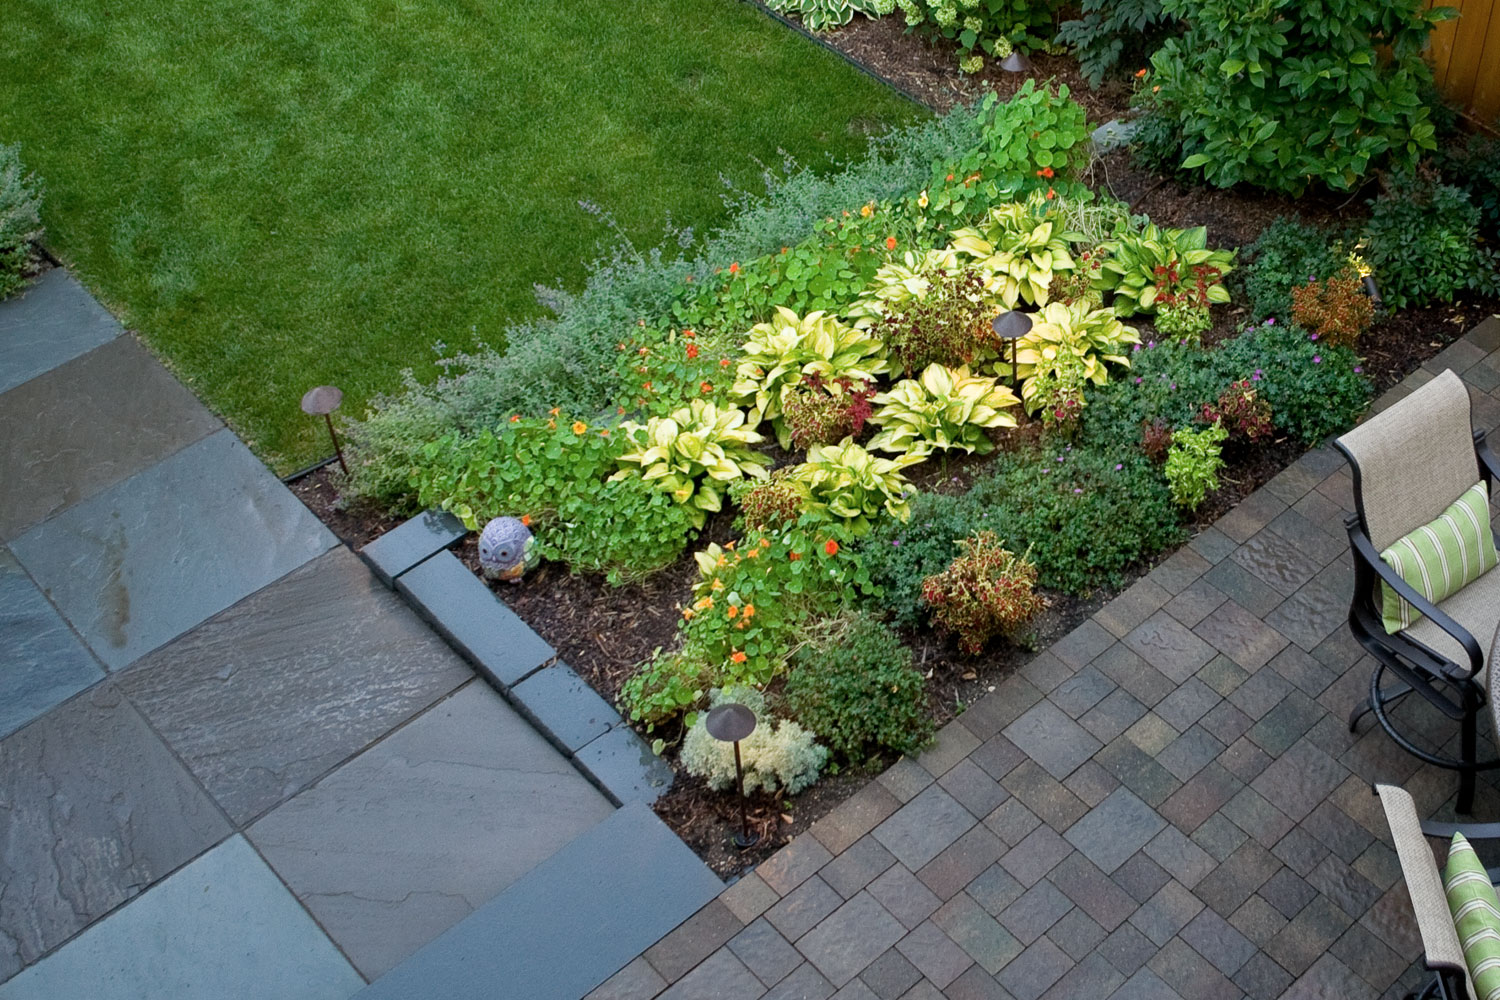 Edible Garden Minneapolis Mn Landscape Design